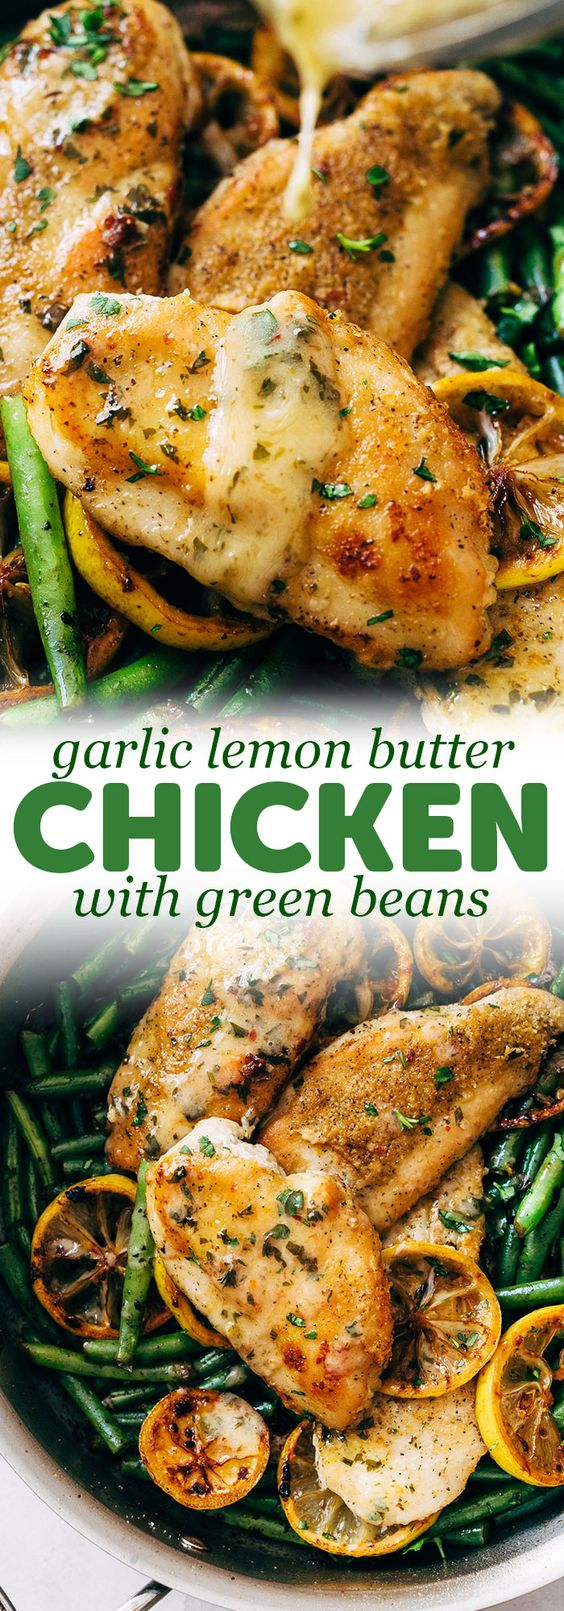 Skillet Garlic Lemon Butter Chicken